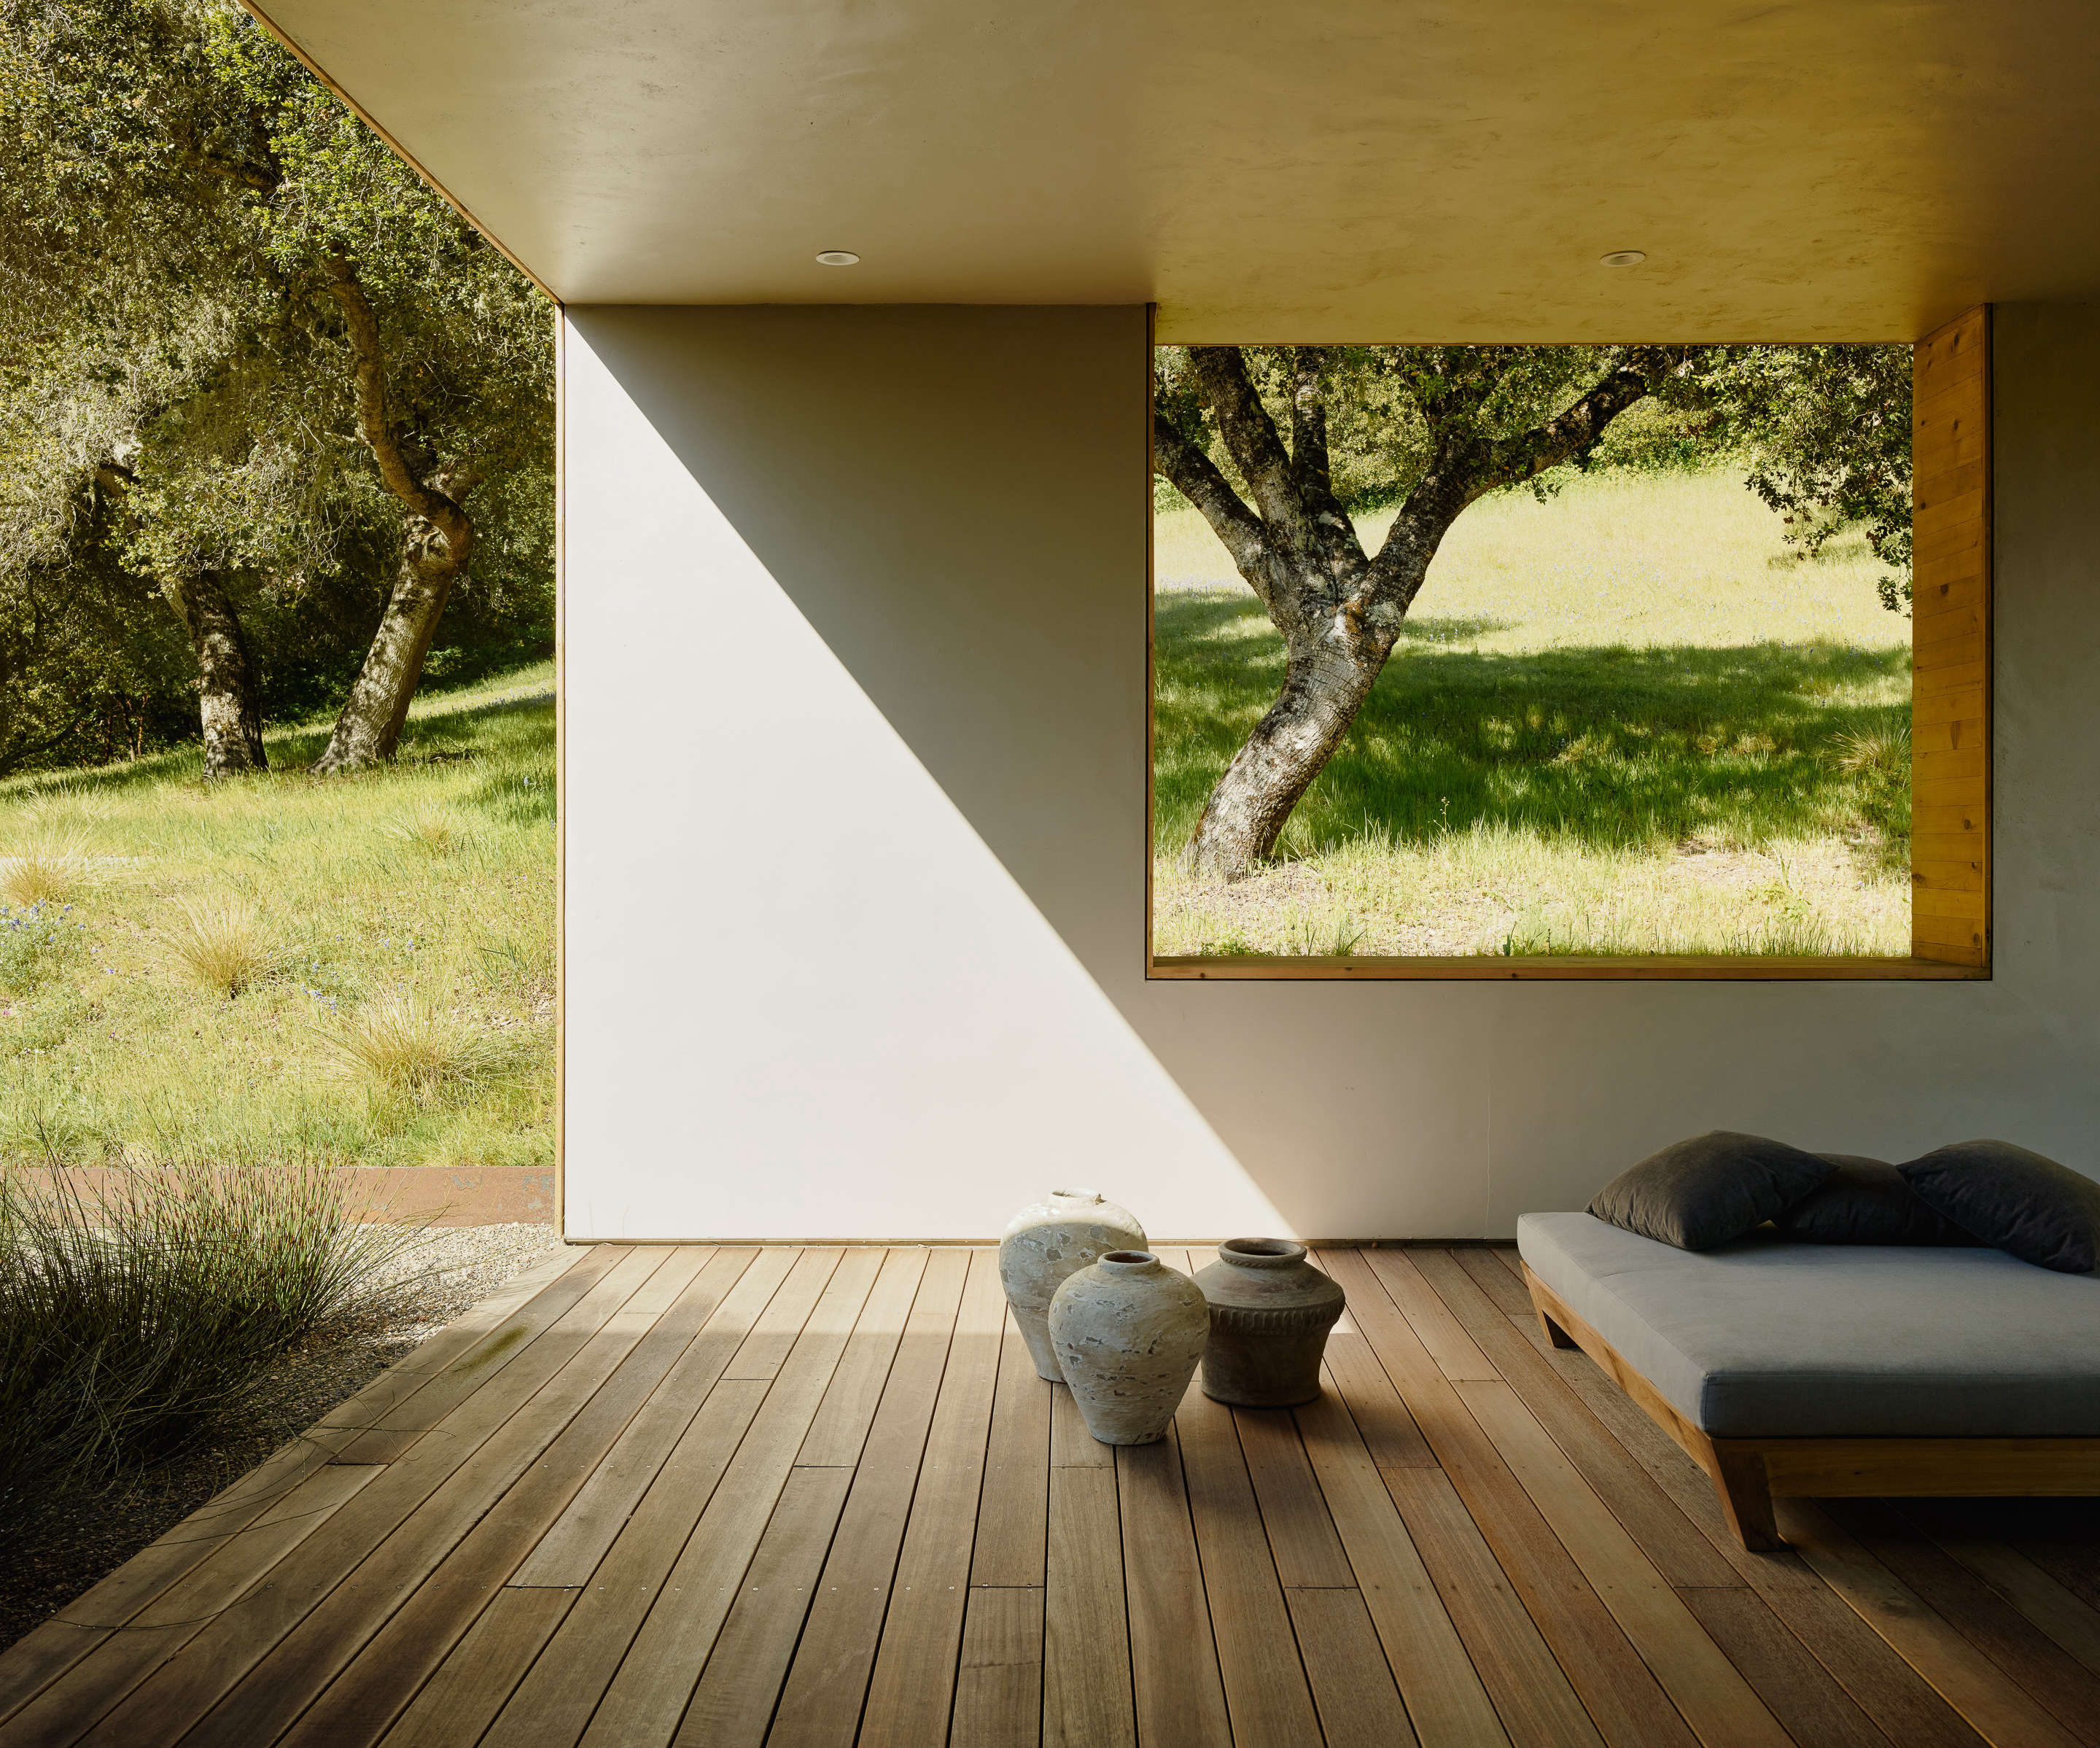 Landscape Architect Visit: The California Life, Outdoor ... on Garden And Outdoor Living id=33581